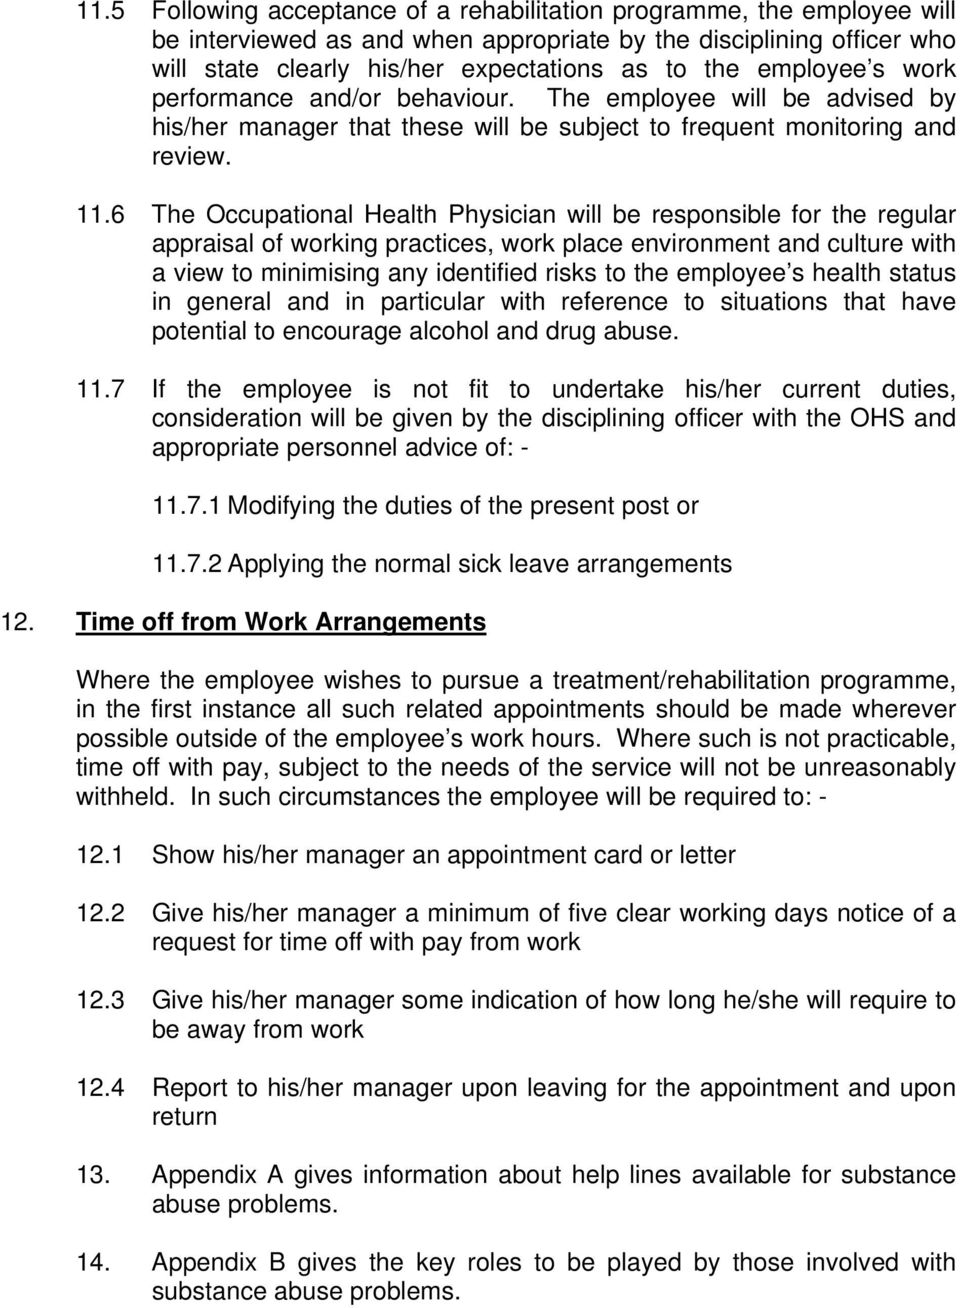 6 The Occupational Health Physician will be responsible for the regular appraisal of working practices, work place environment and culture with a view to minimising any identified risks to the